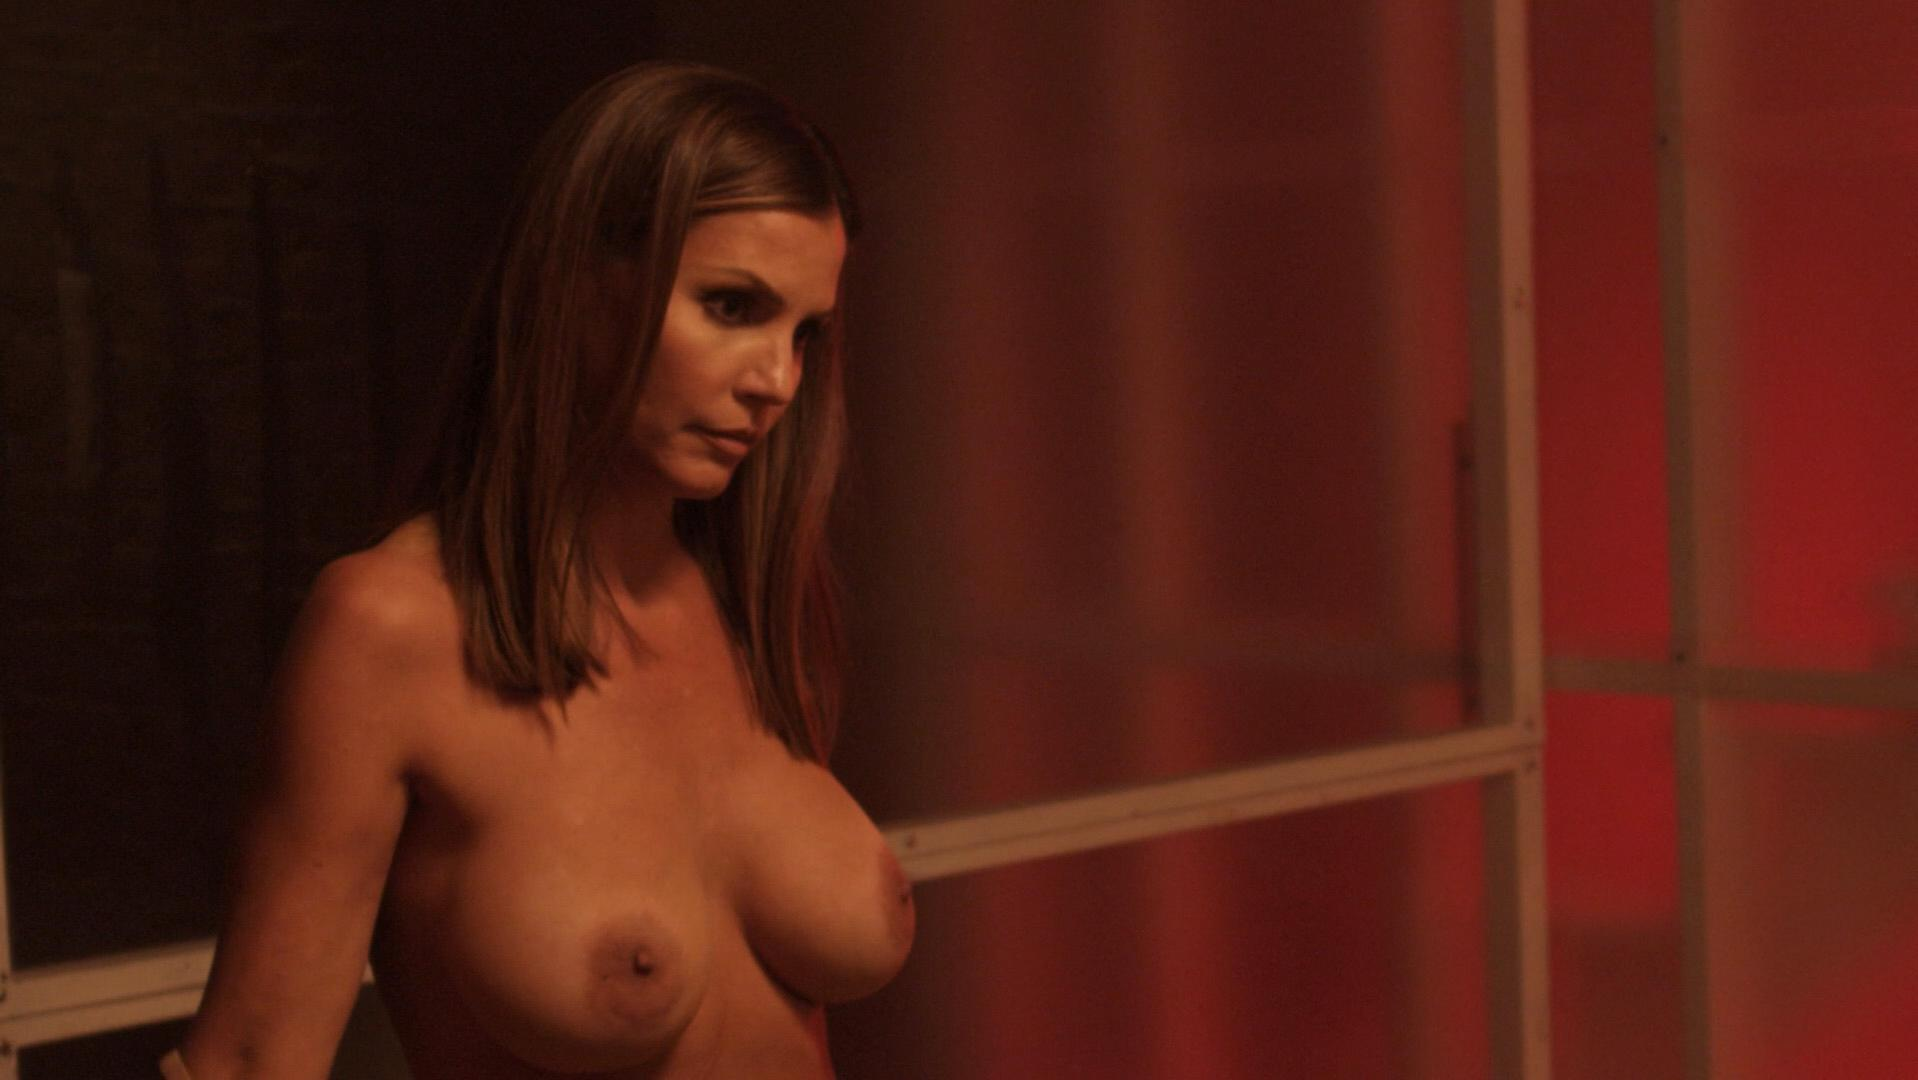 Charisma carpenter sex scene video